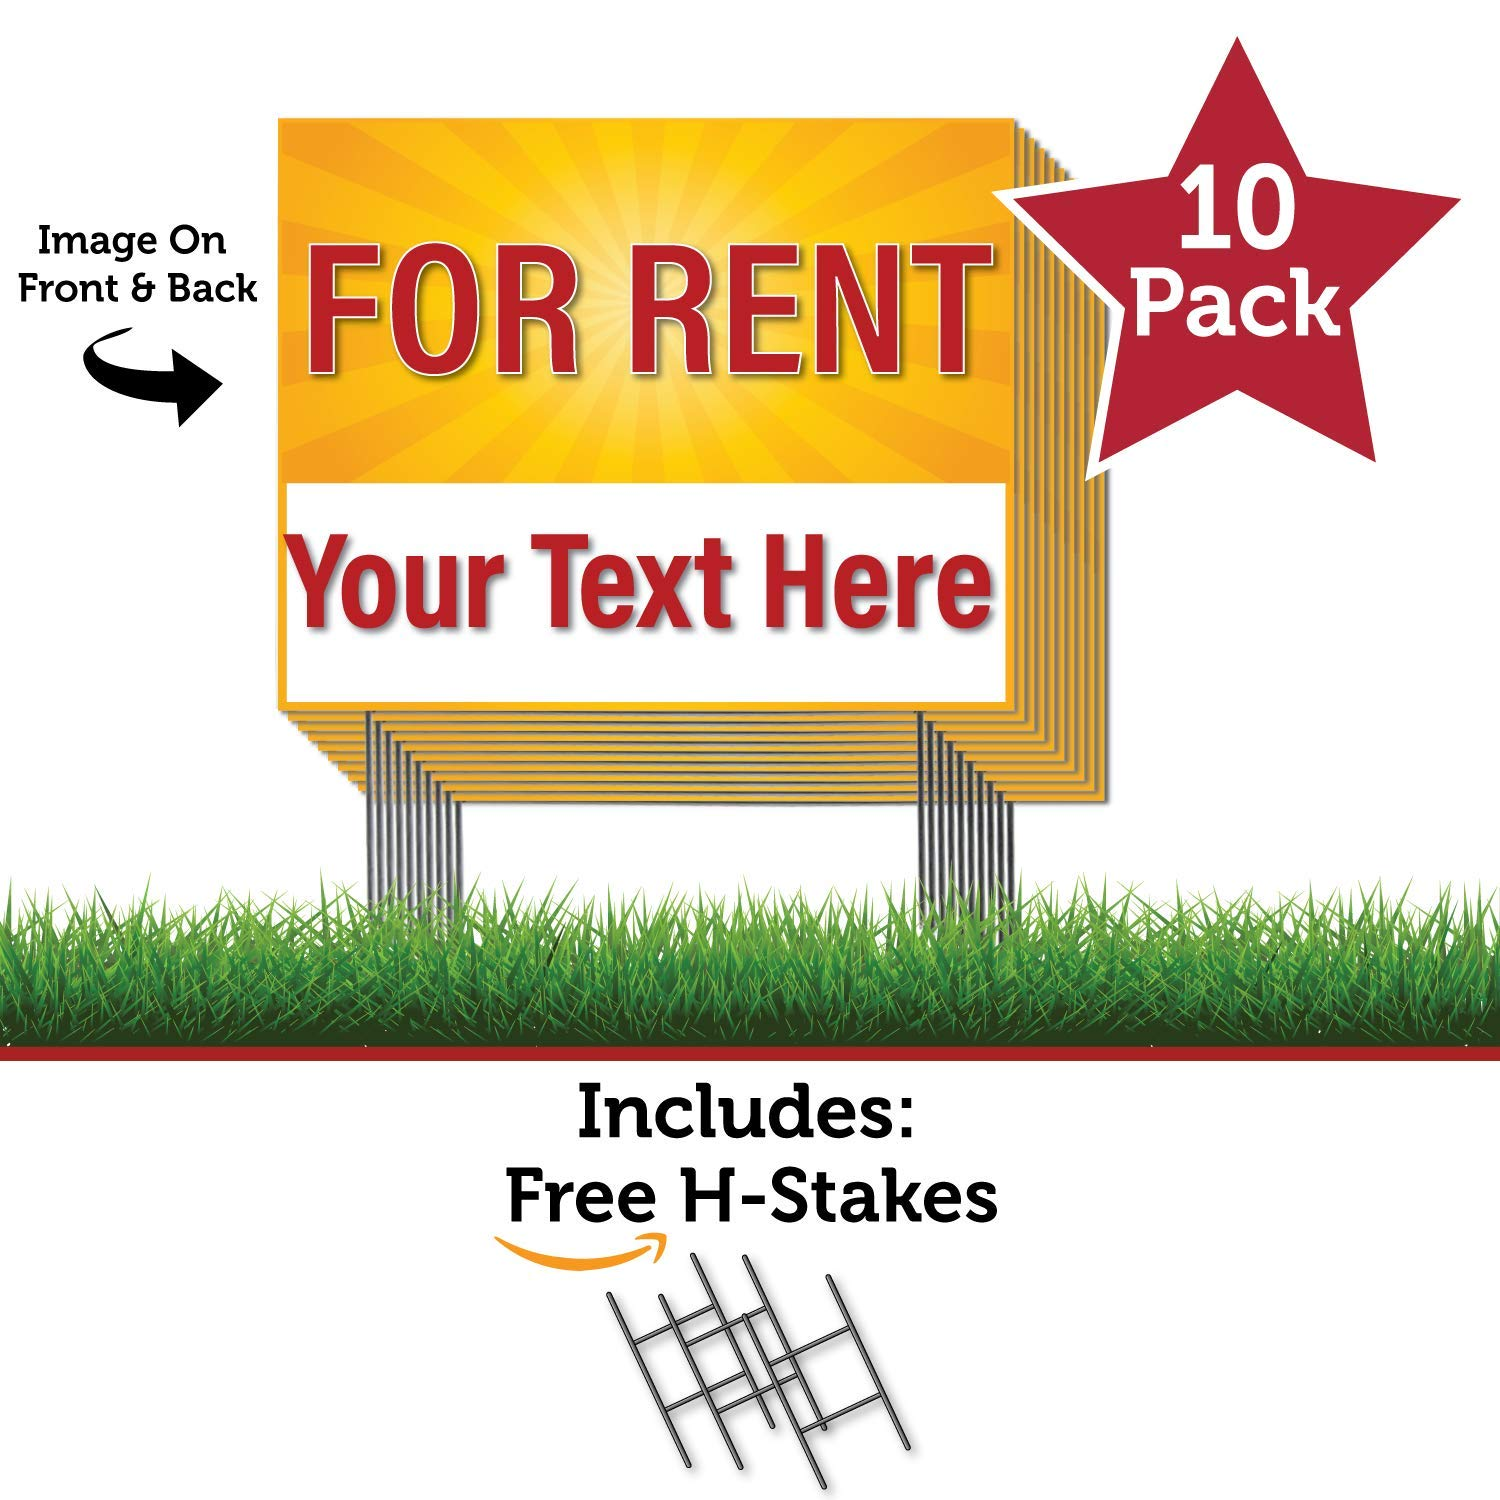 HALF PRICE BANNERS | Custom | for Rent - 10 Pack Double Sided Coroplast Yard Signs | 18''x24'' YEL Burst | Free H-Stakes | Easy Install Advertising Sign | Business Real Estate | Made in The USA